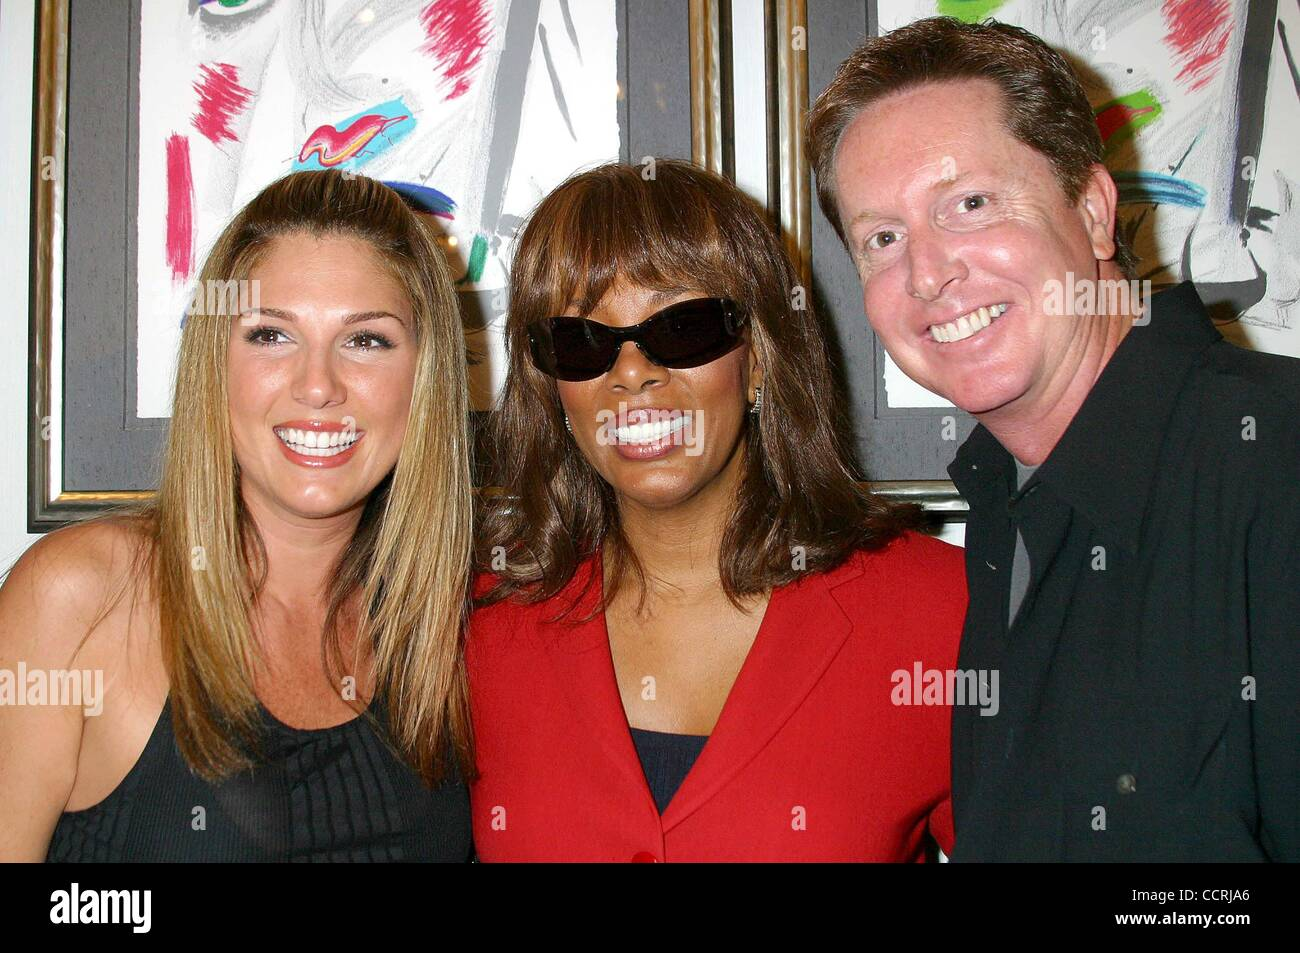 Donna Summers Stock Photos & Donna Summers Stock Images - Alamy